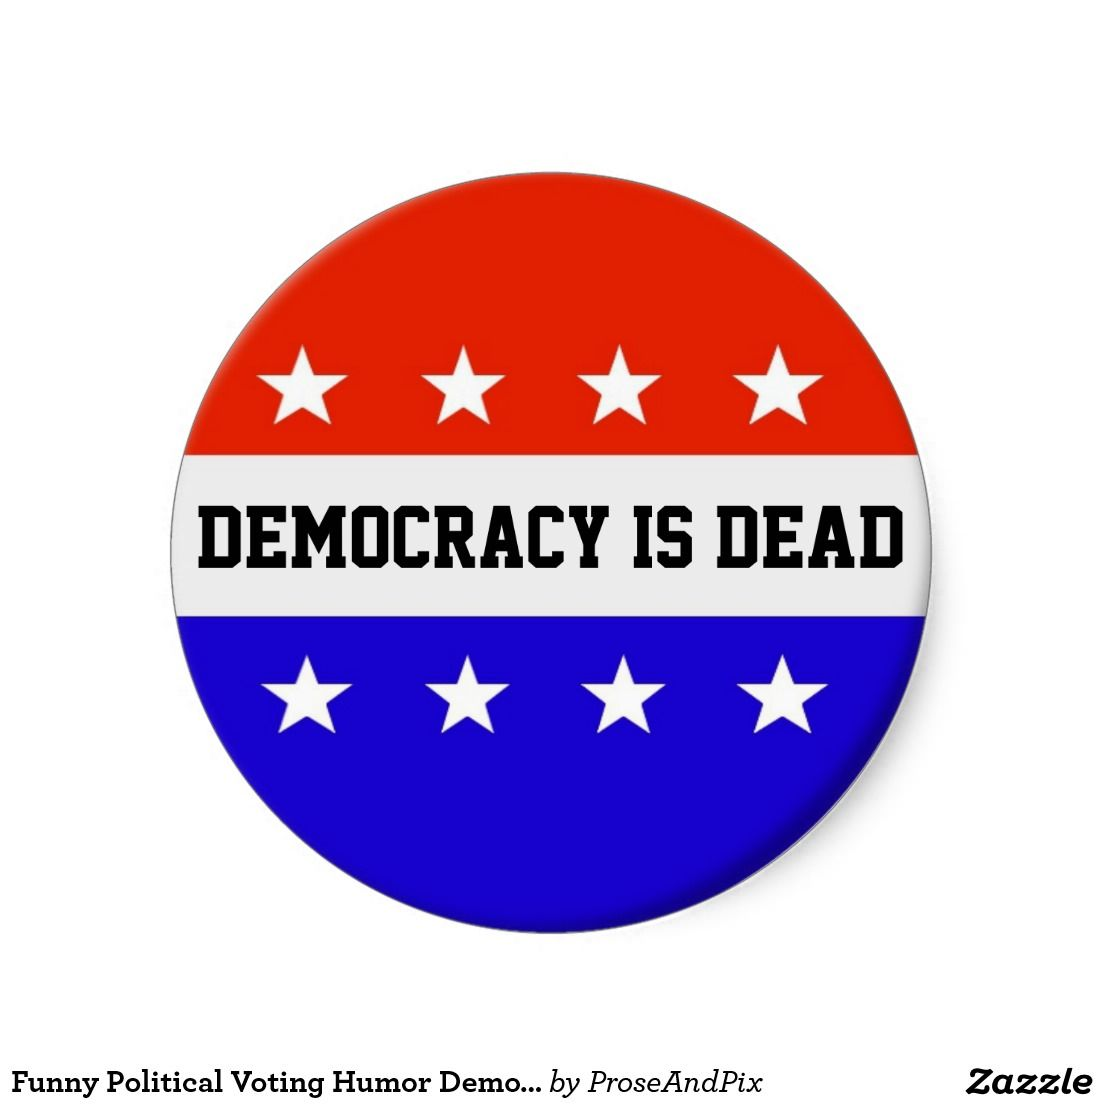 Funny Political Voting Humor Democracy Is Dead Round Stickers - Stickers zazzle